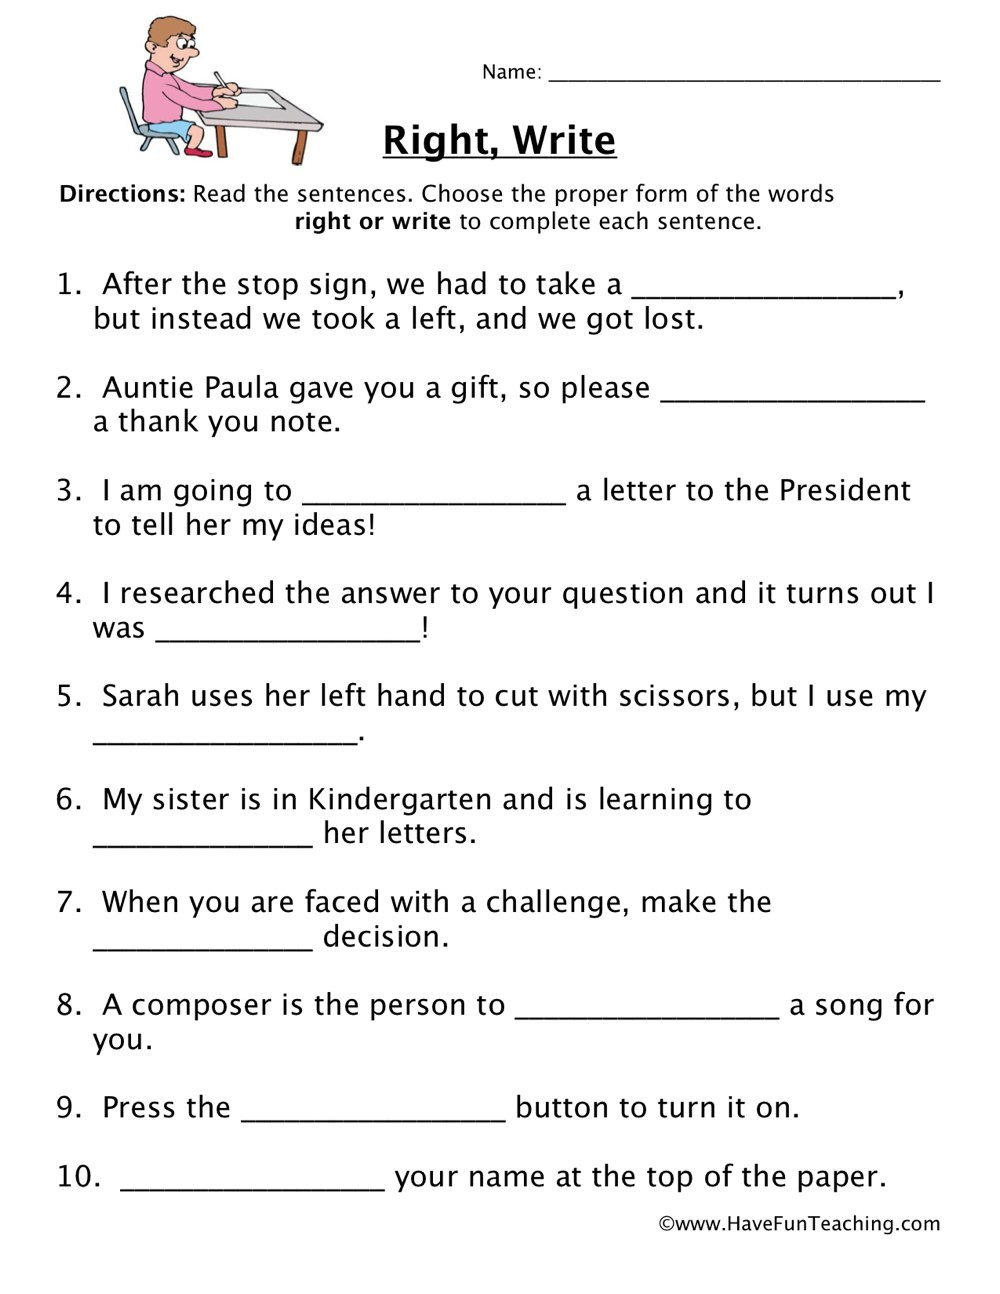 Homophones Worksheets for Grade 2 Right Write Homophones Worksheet